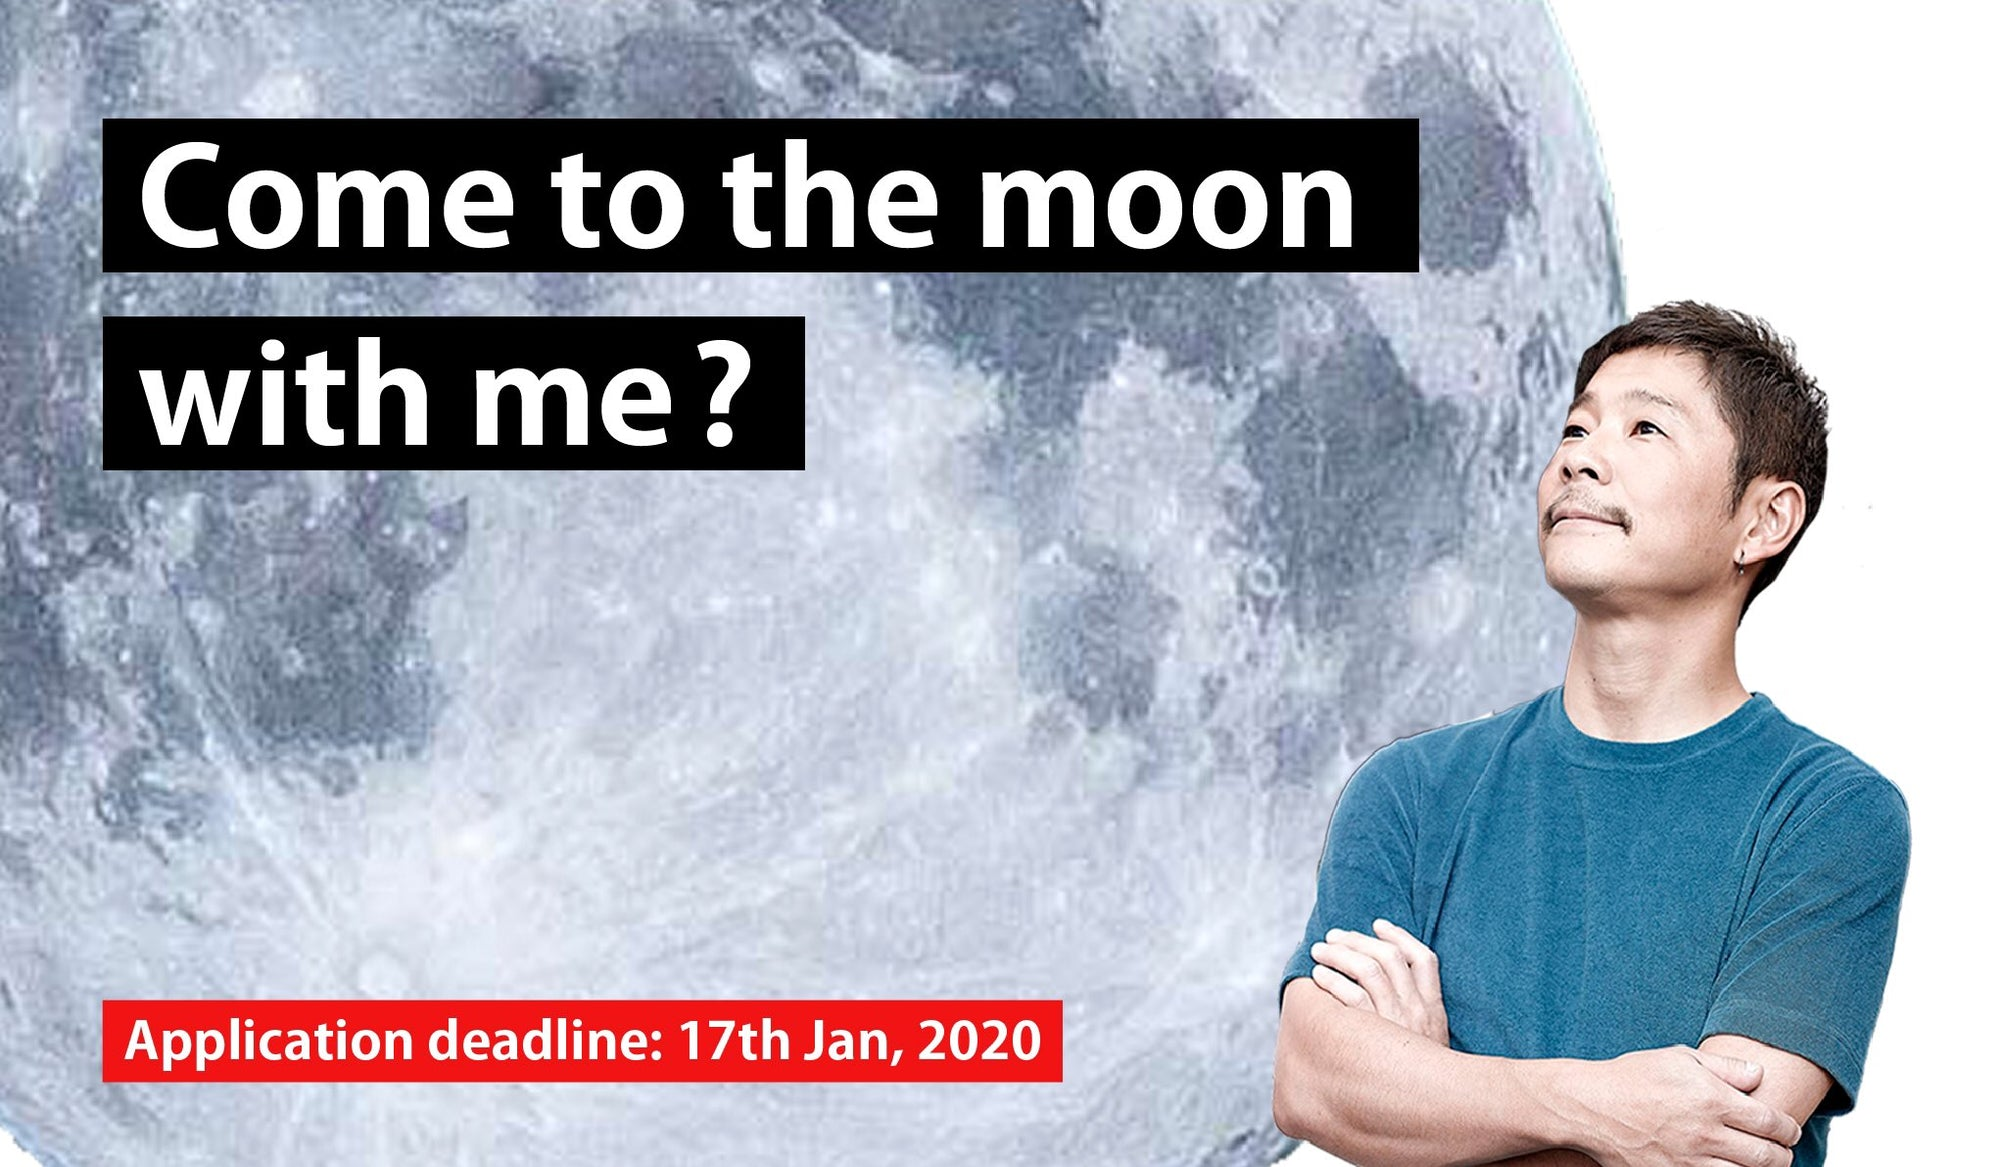 SpaceX will launch Yusaku Maezawa on a voyage to the Moon he is searching for a girlfriend to go with him